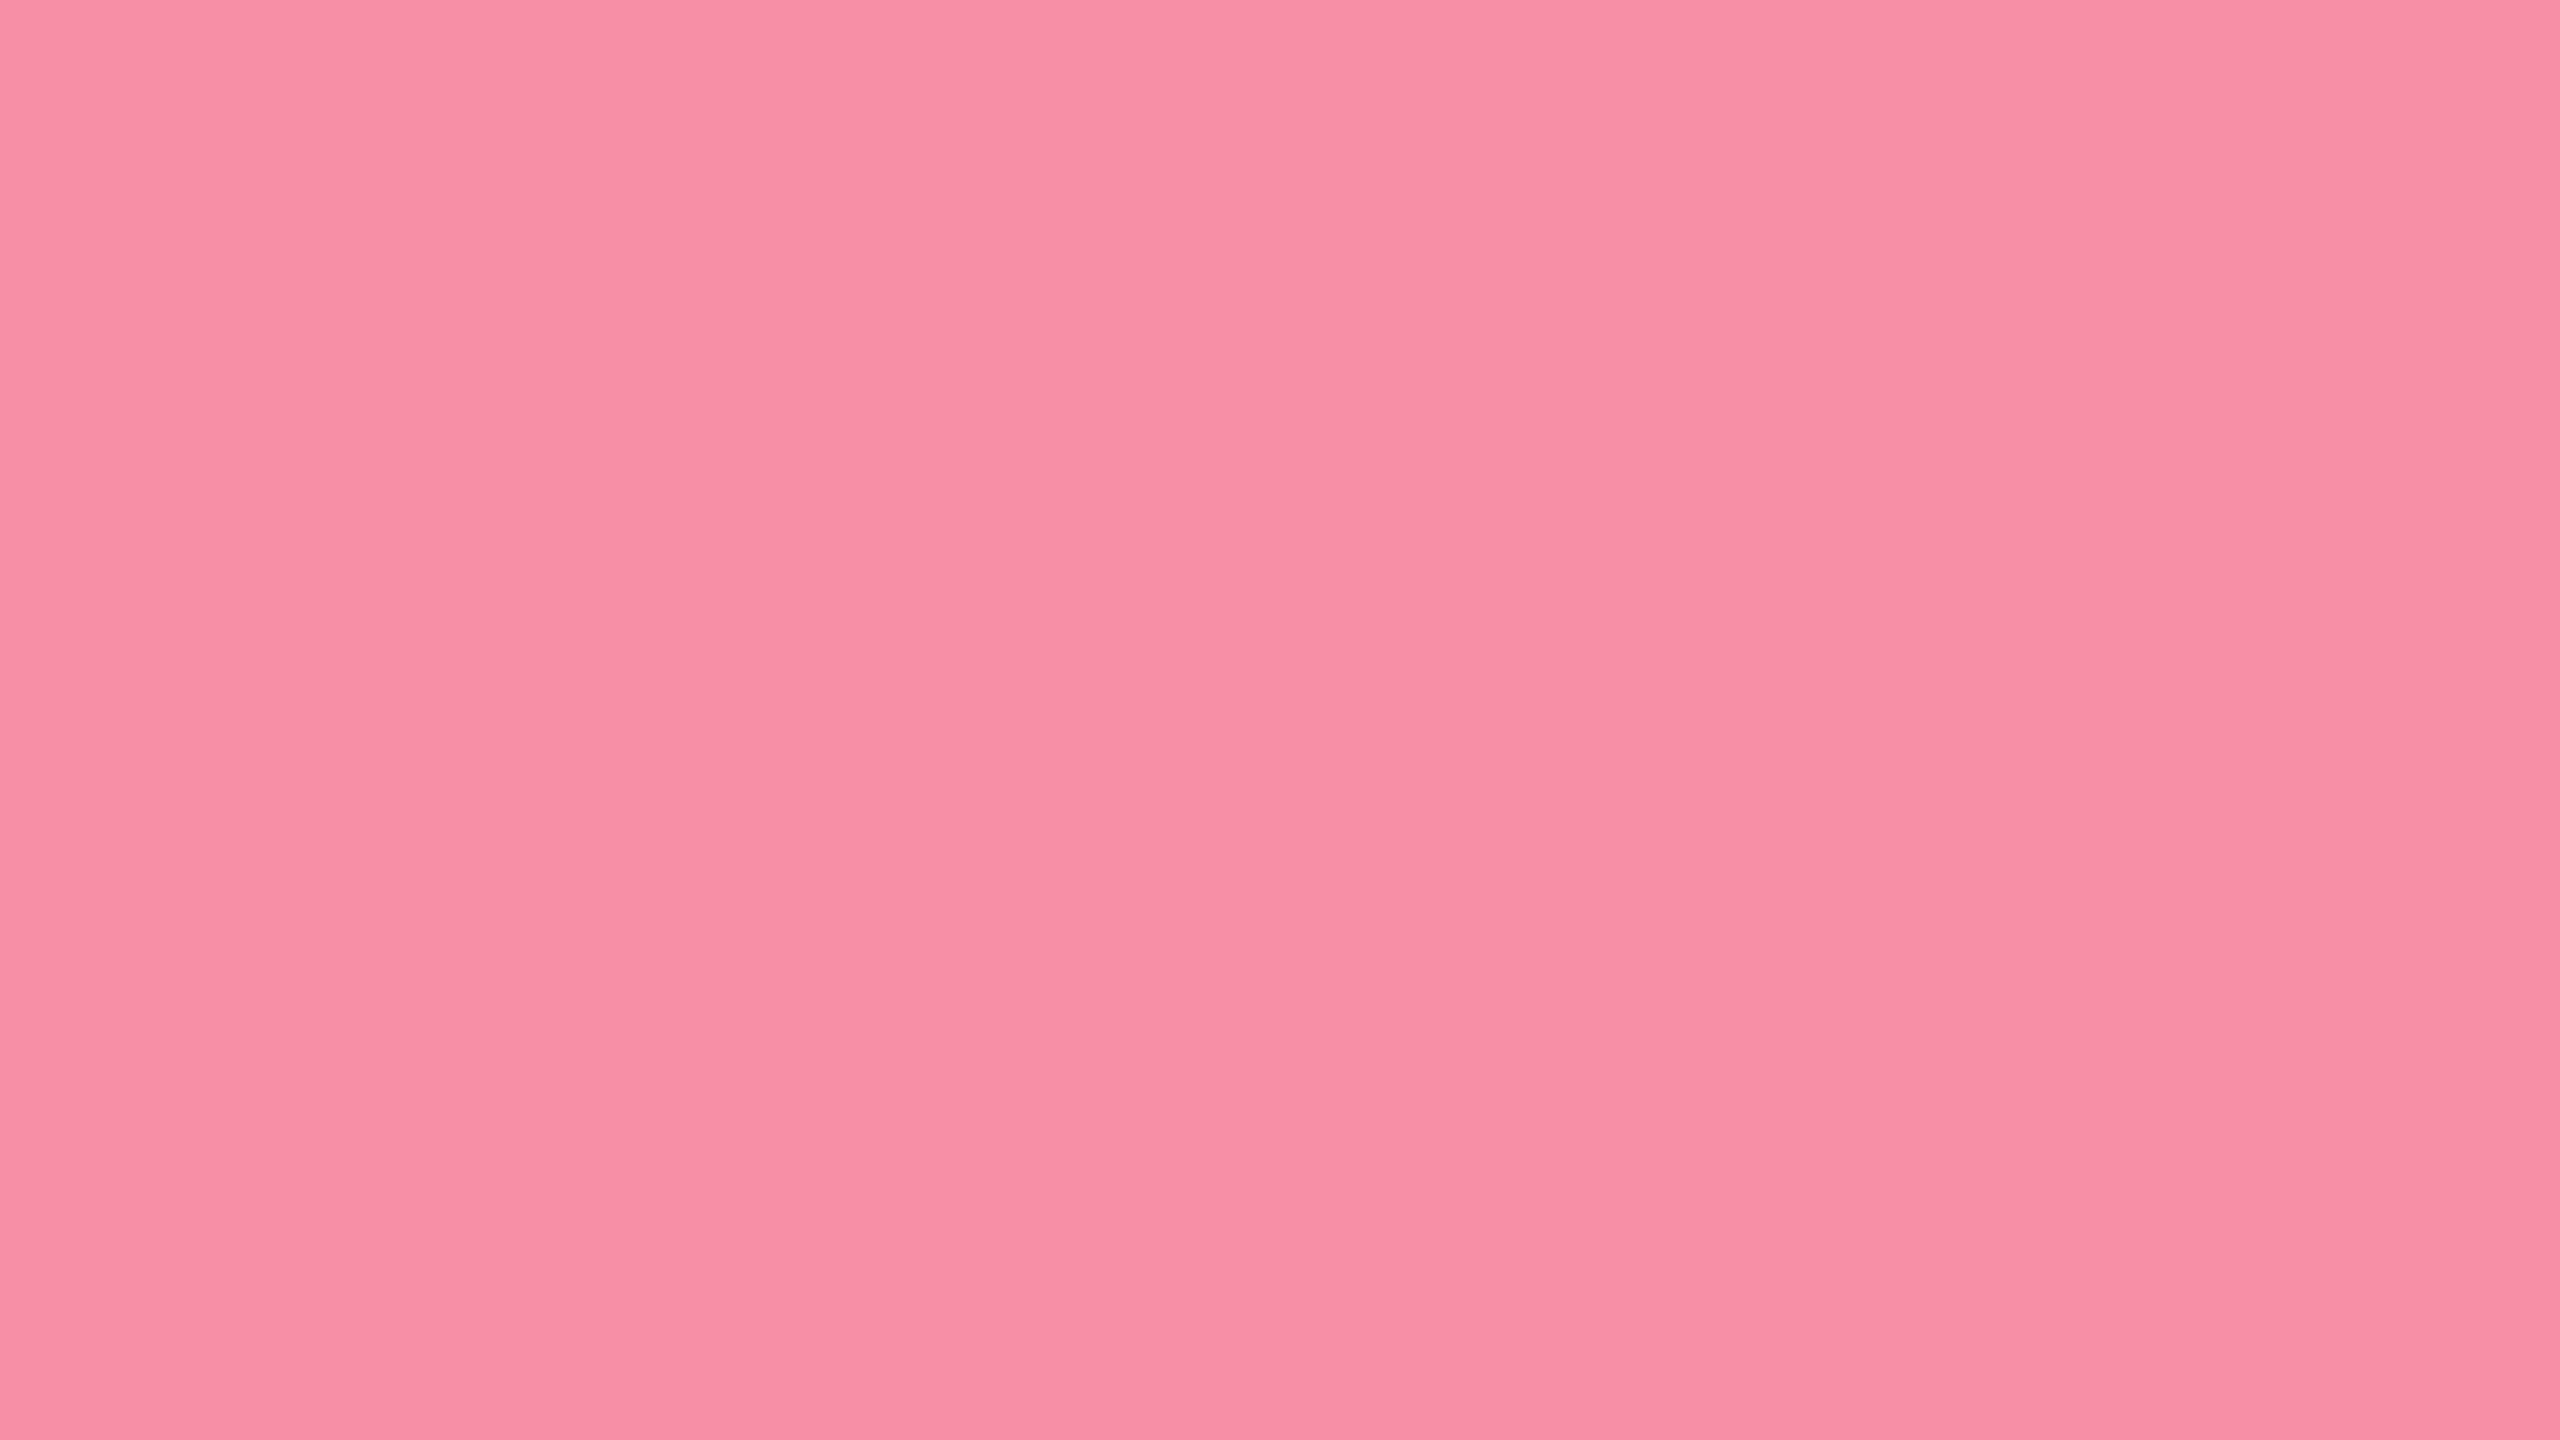 2560x1440 Pink Sherbet Solid Color Background